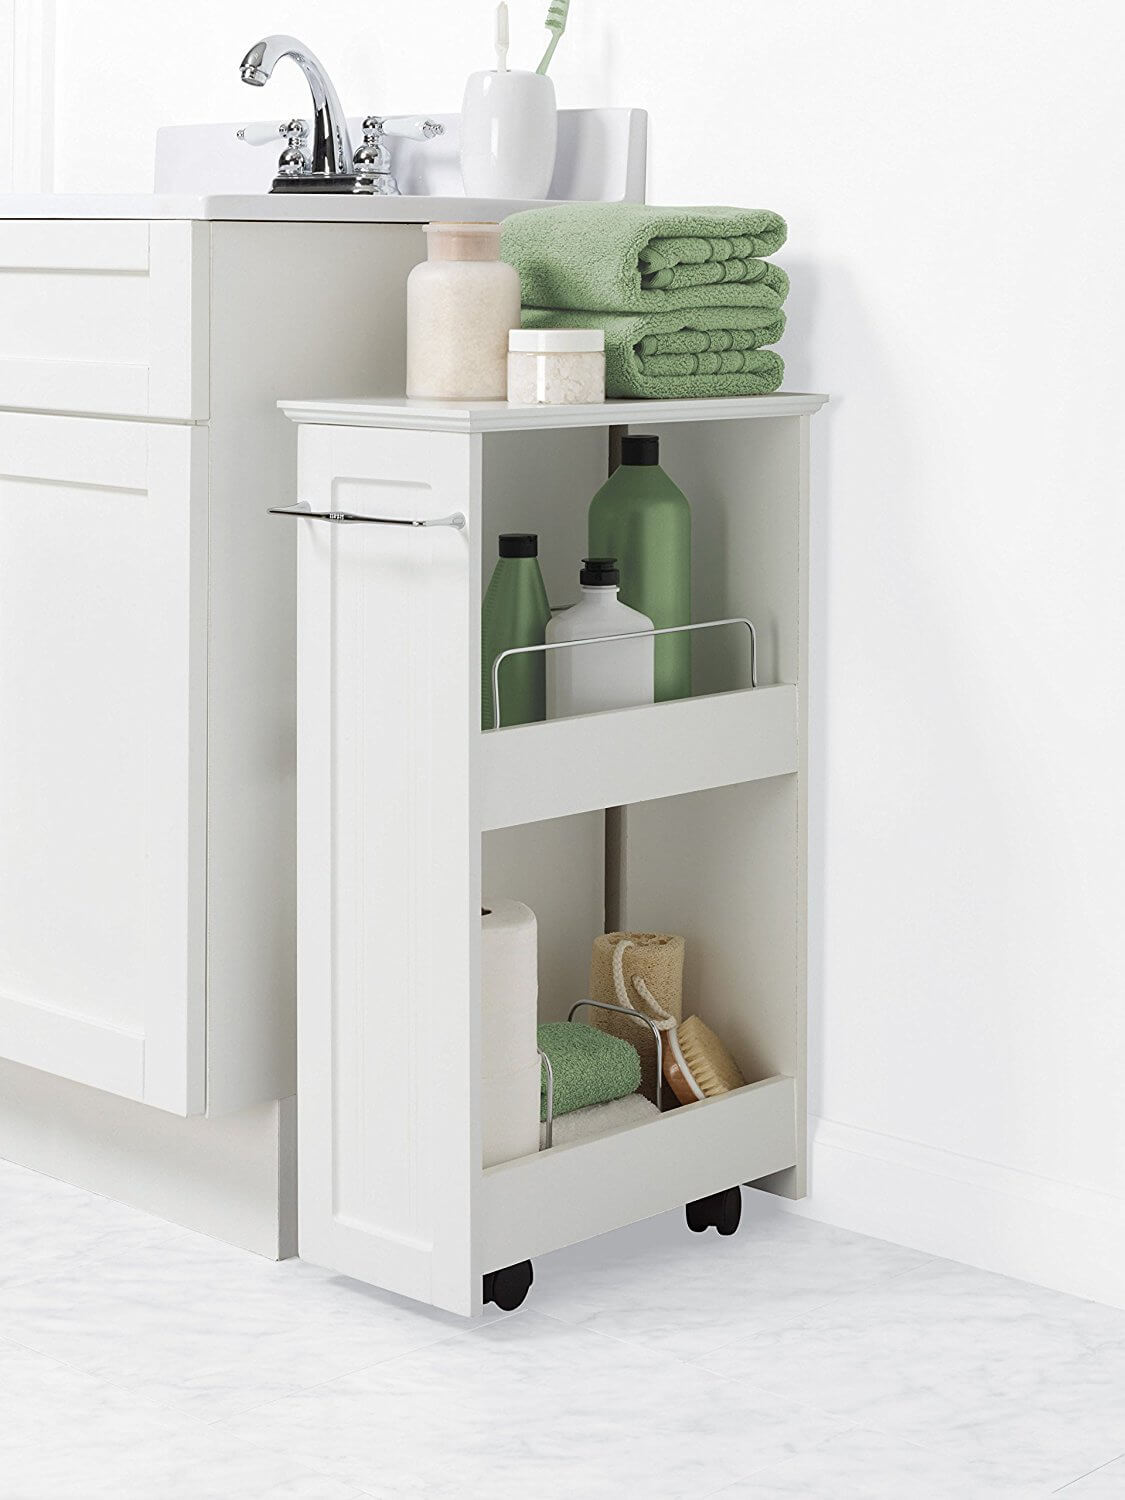 26 Best Bathroom Storage Cabinet Ideas for 2019